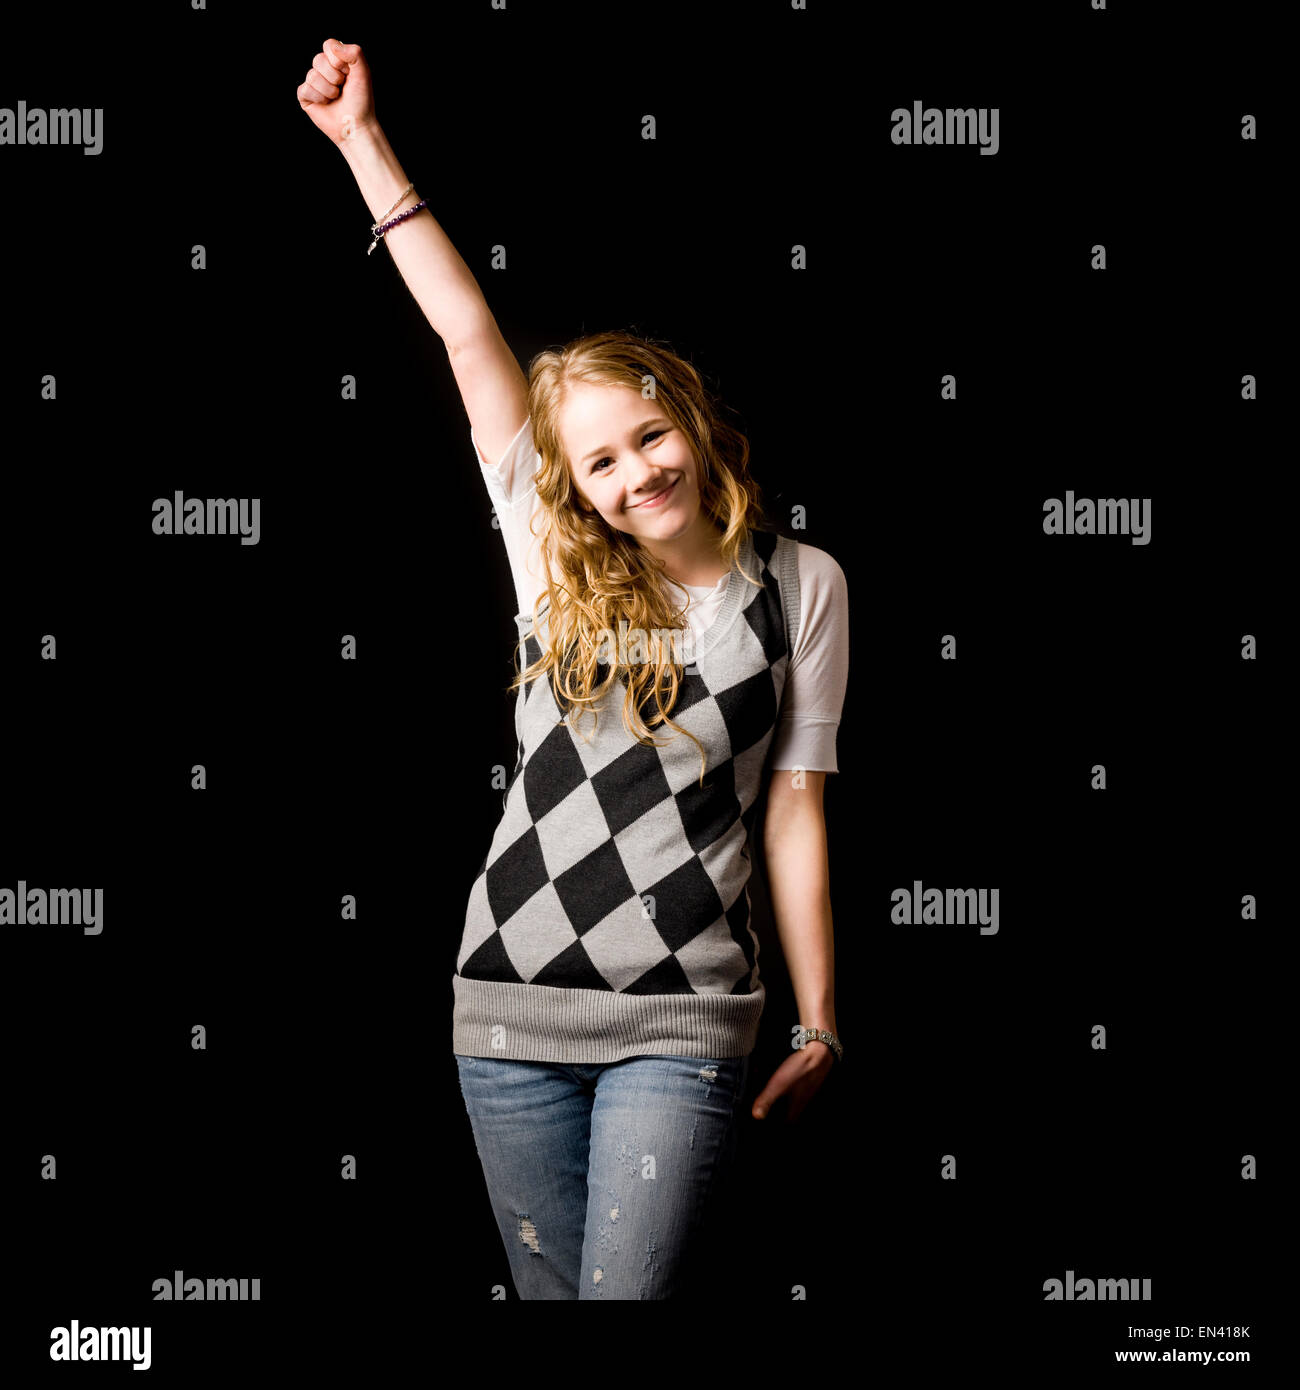 young woman in an argyle sweater vest - Stock Image